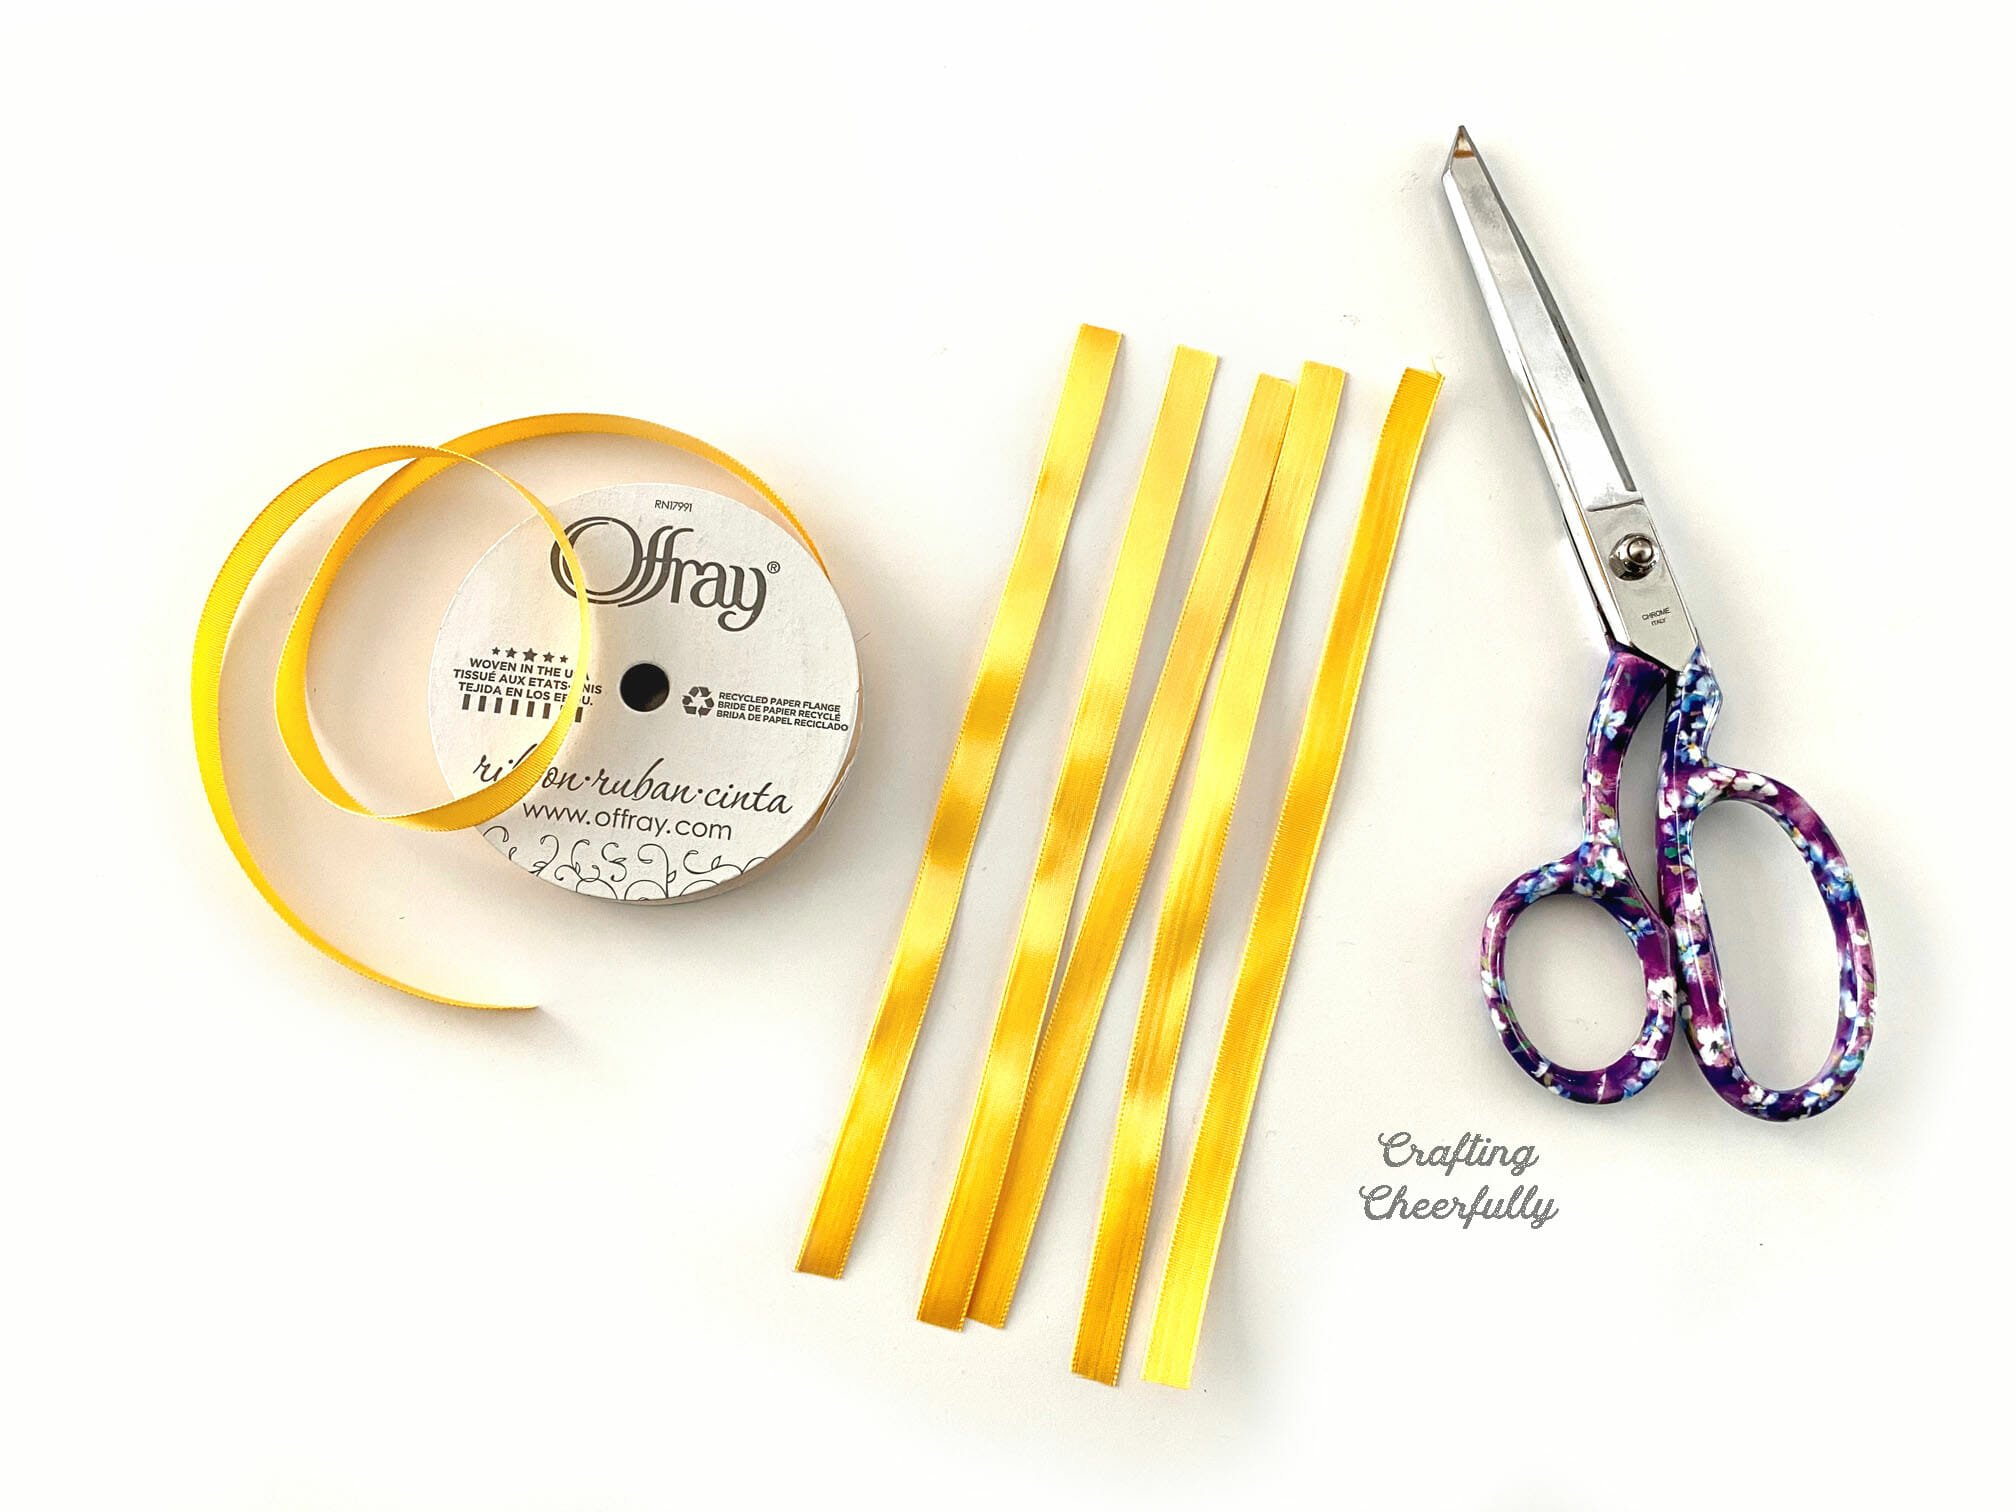 Strips of yellow ribbon lay next to a scissors on a white table.